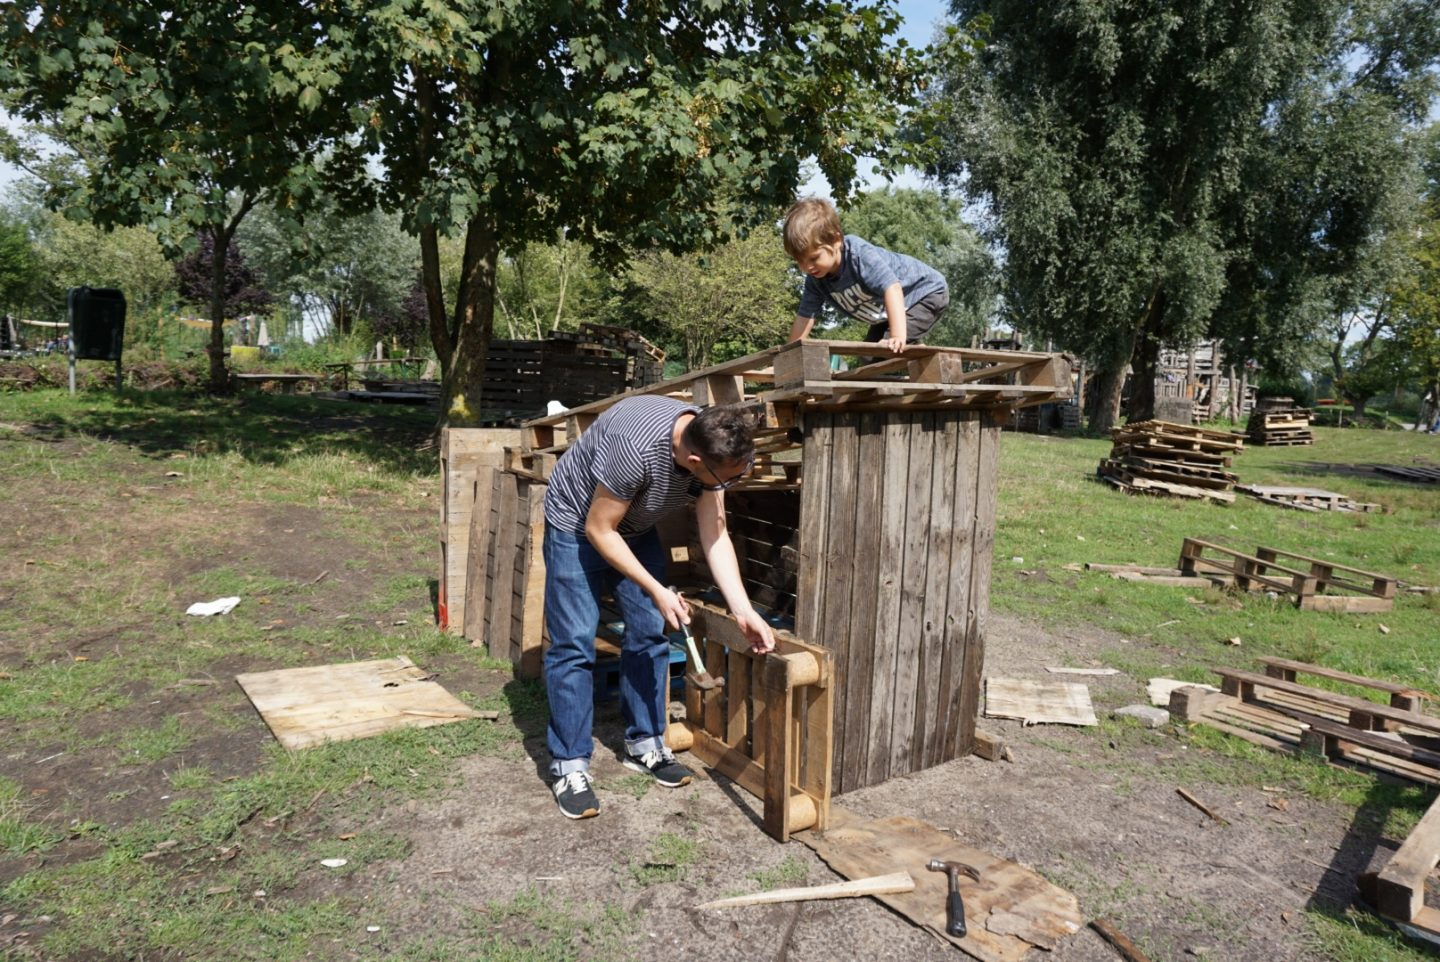 Museum Boy and Museum Dad make a wooden play structure with hammer, nails and wooden pallets at Jeugdland, Amsterdam